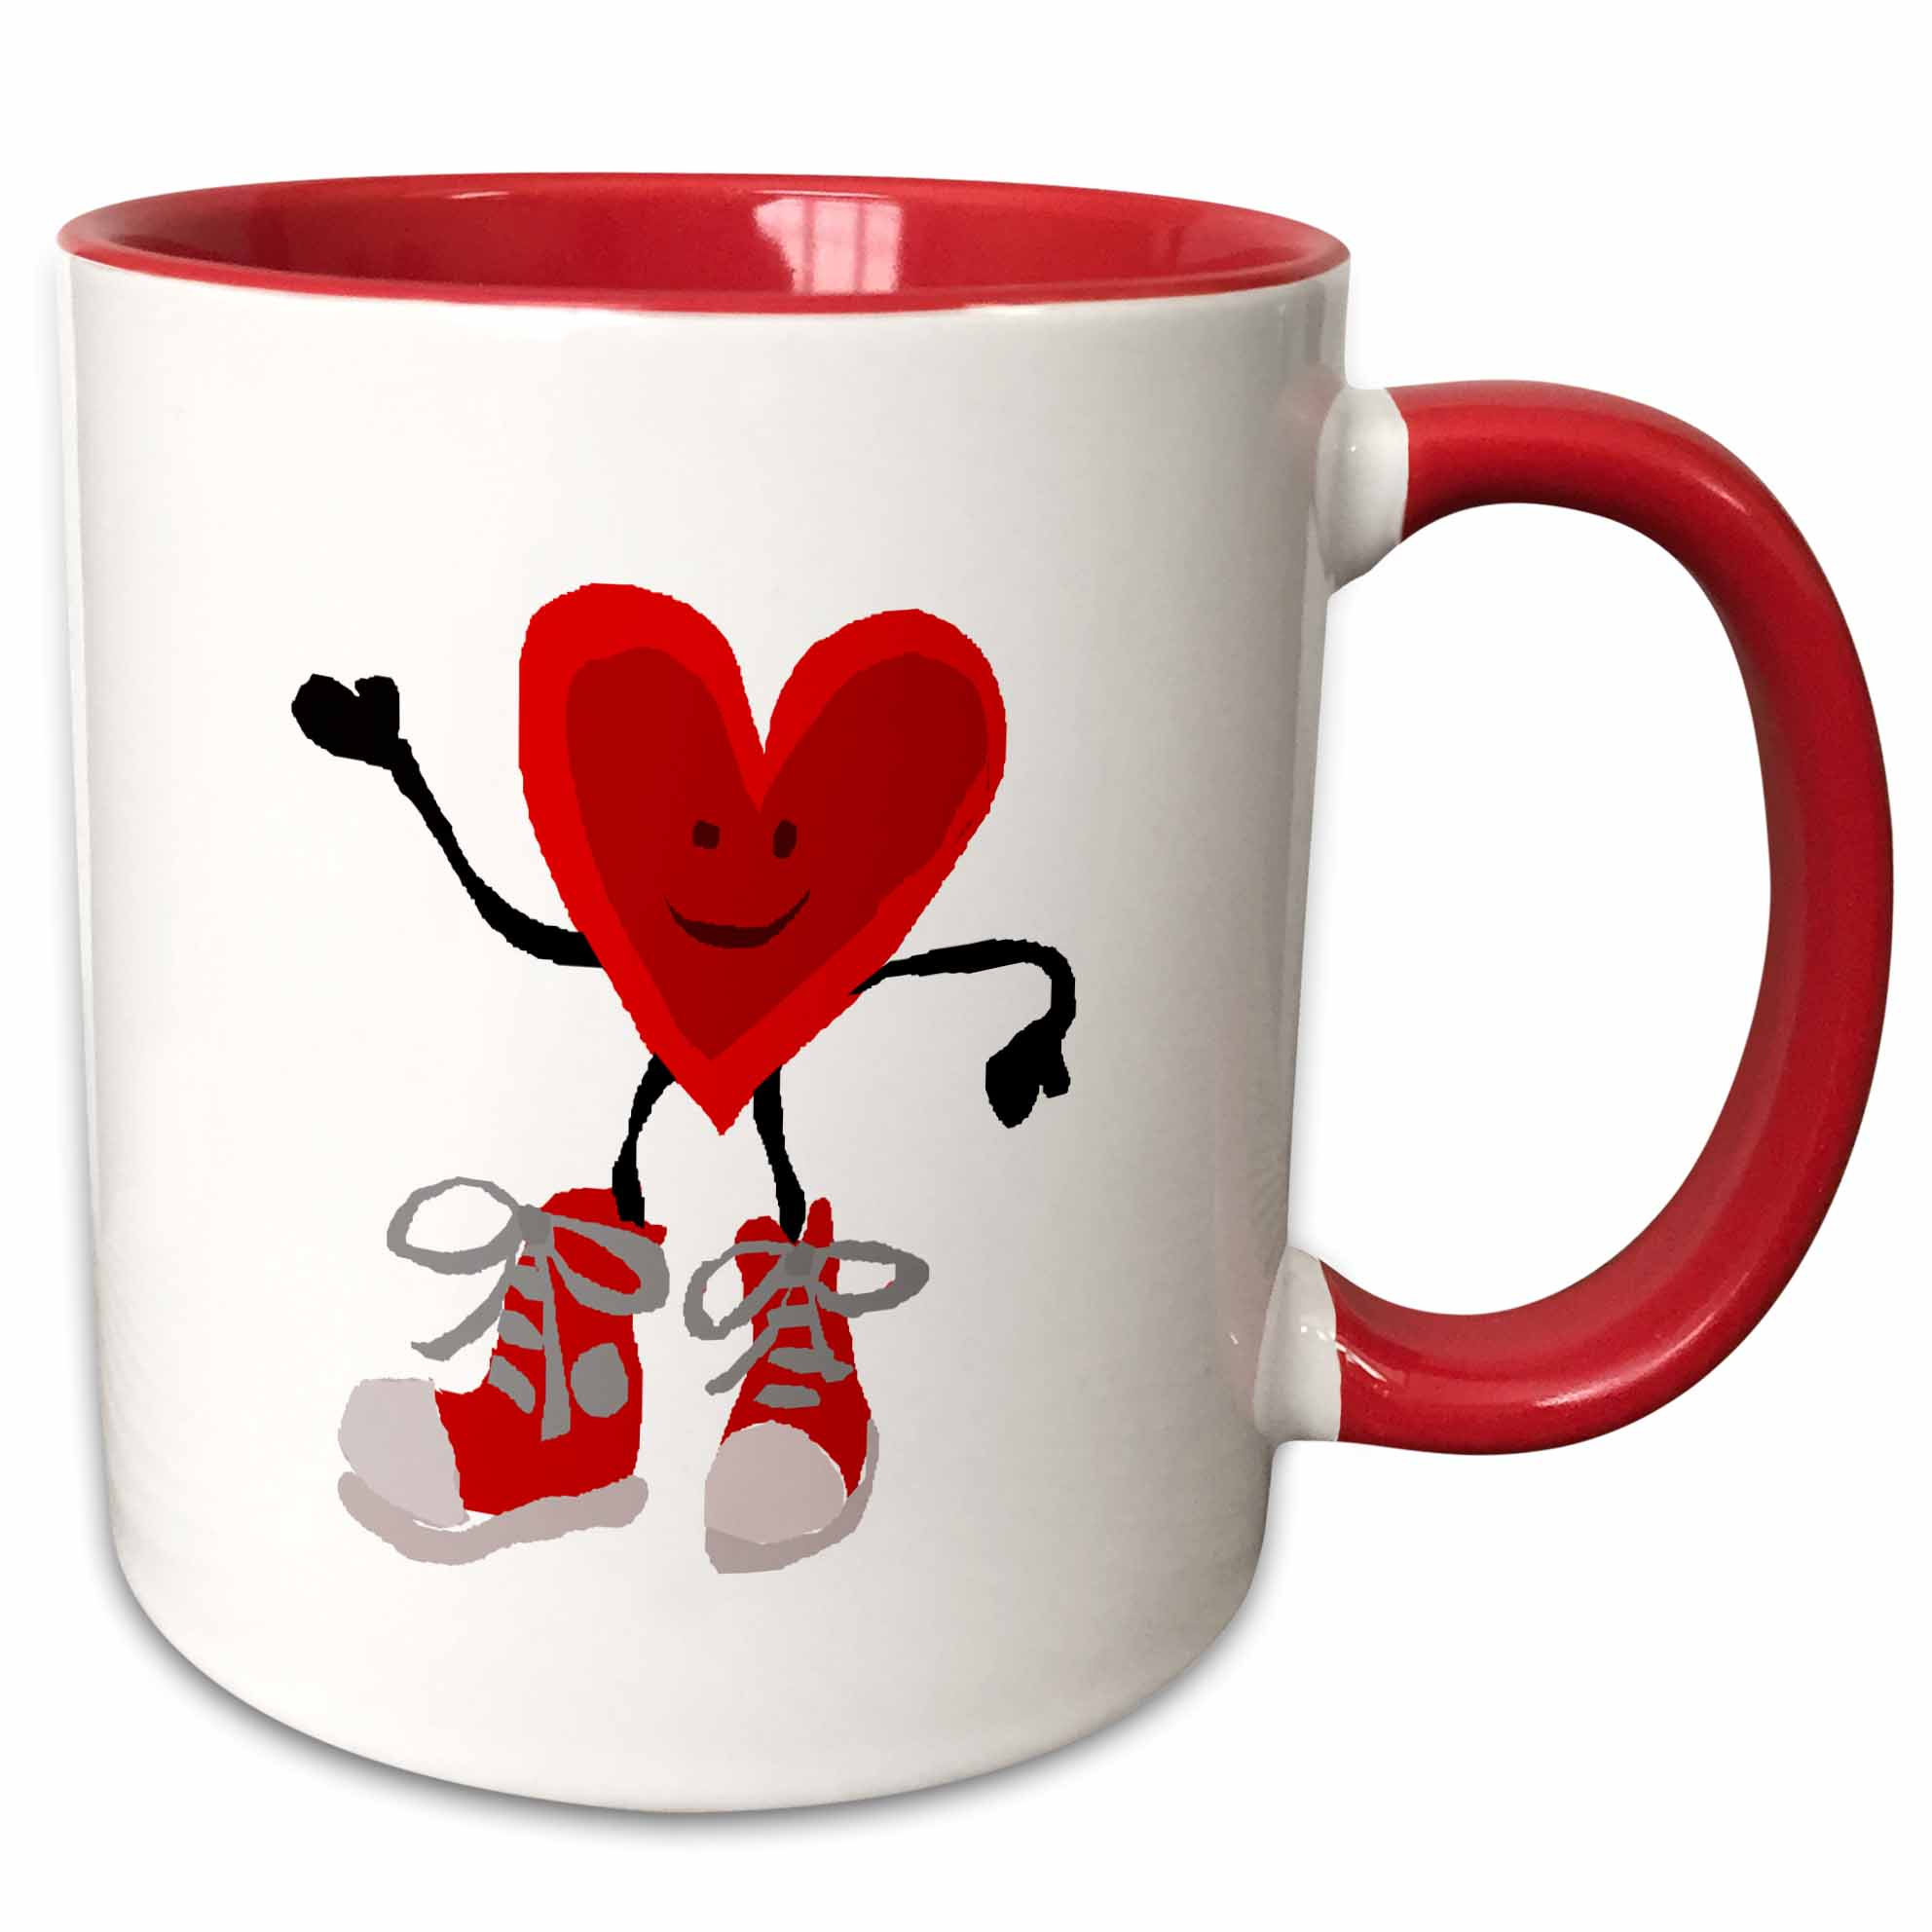 3dRose Funny Red Heart Character Wearing Red High Top Sneakers - Two Tone Red Mug, 11-ounce